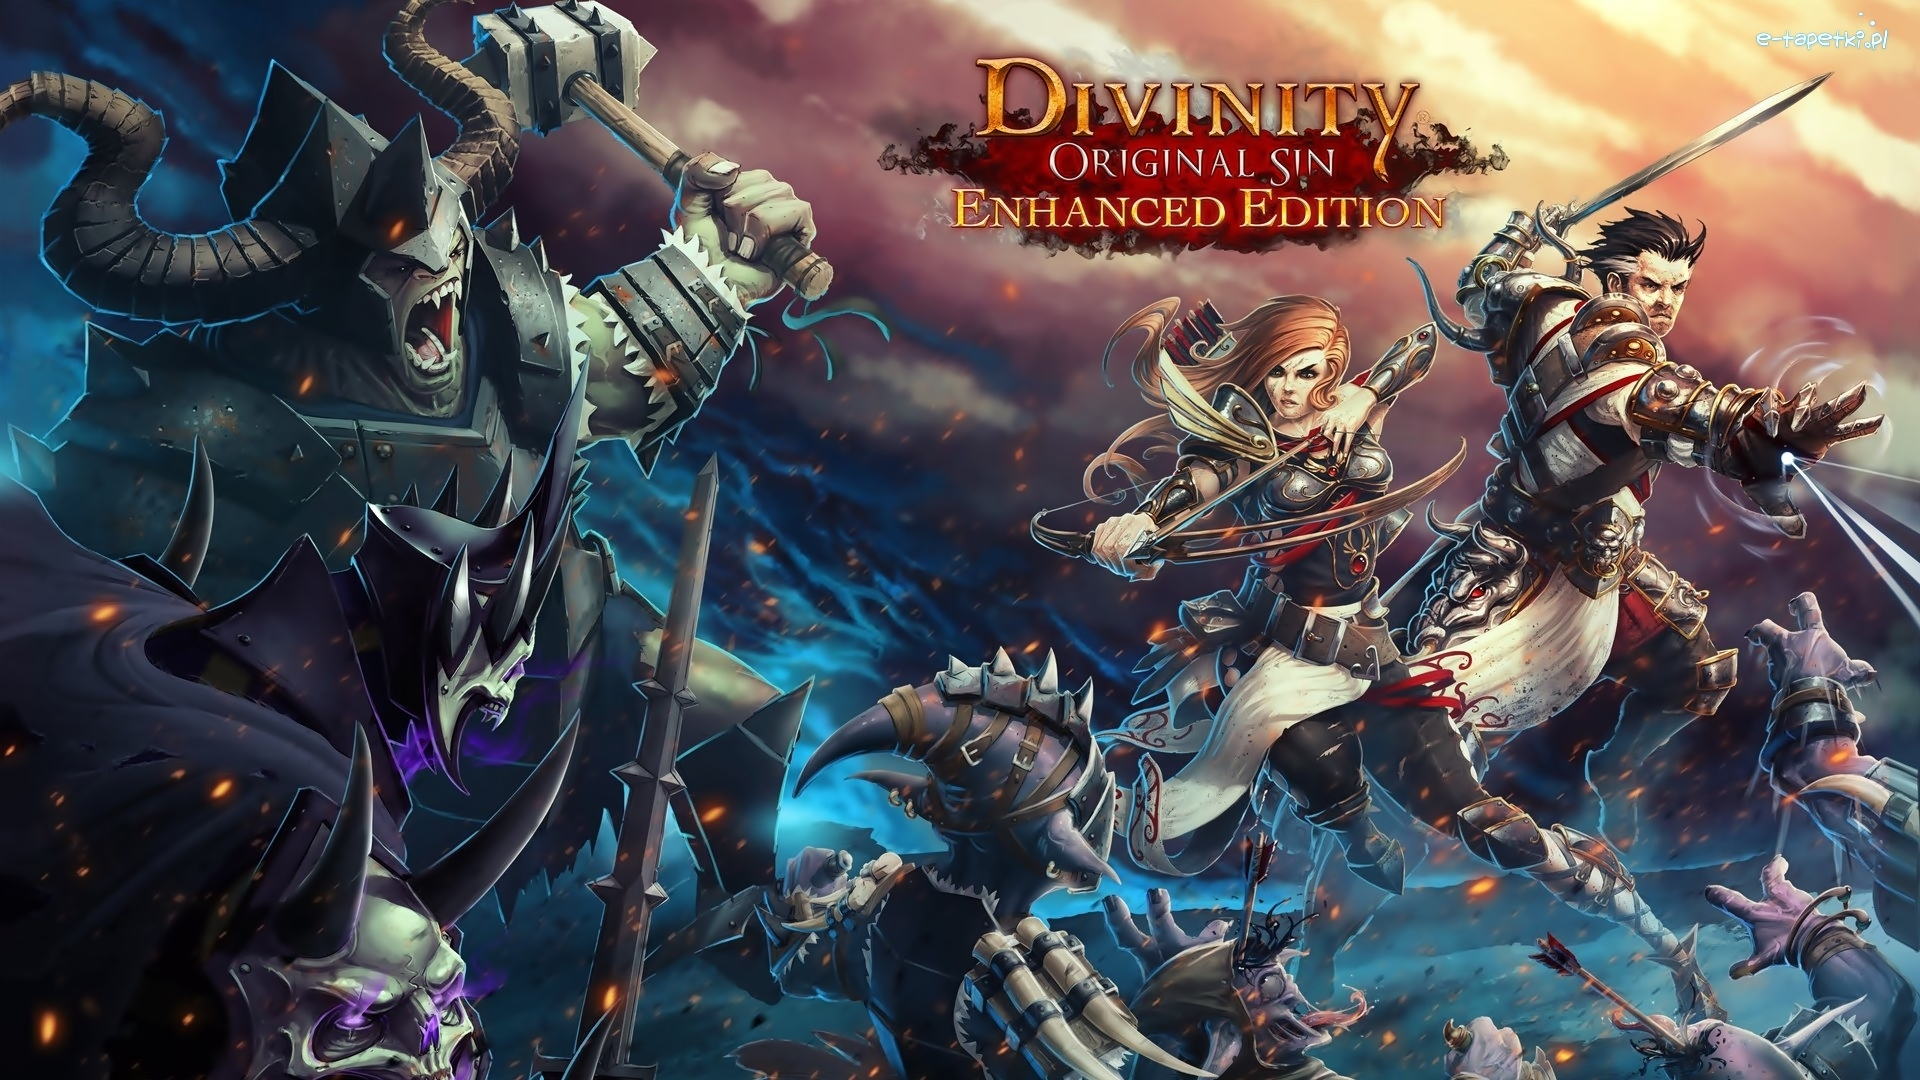 Divinity Original Sin Enhanced Edition, Gra, Postacie